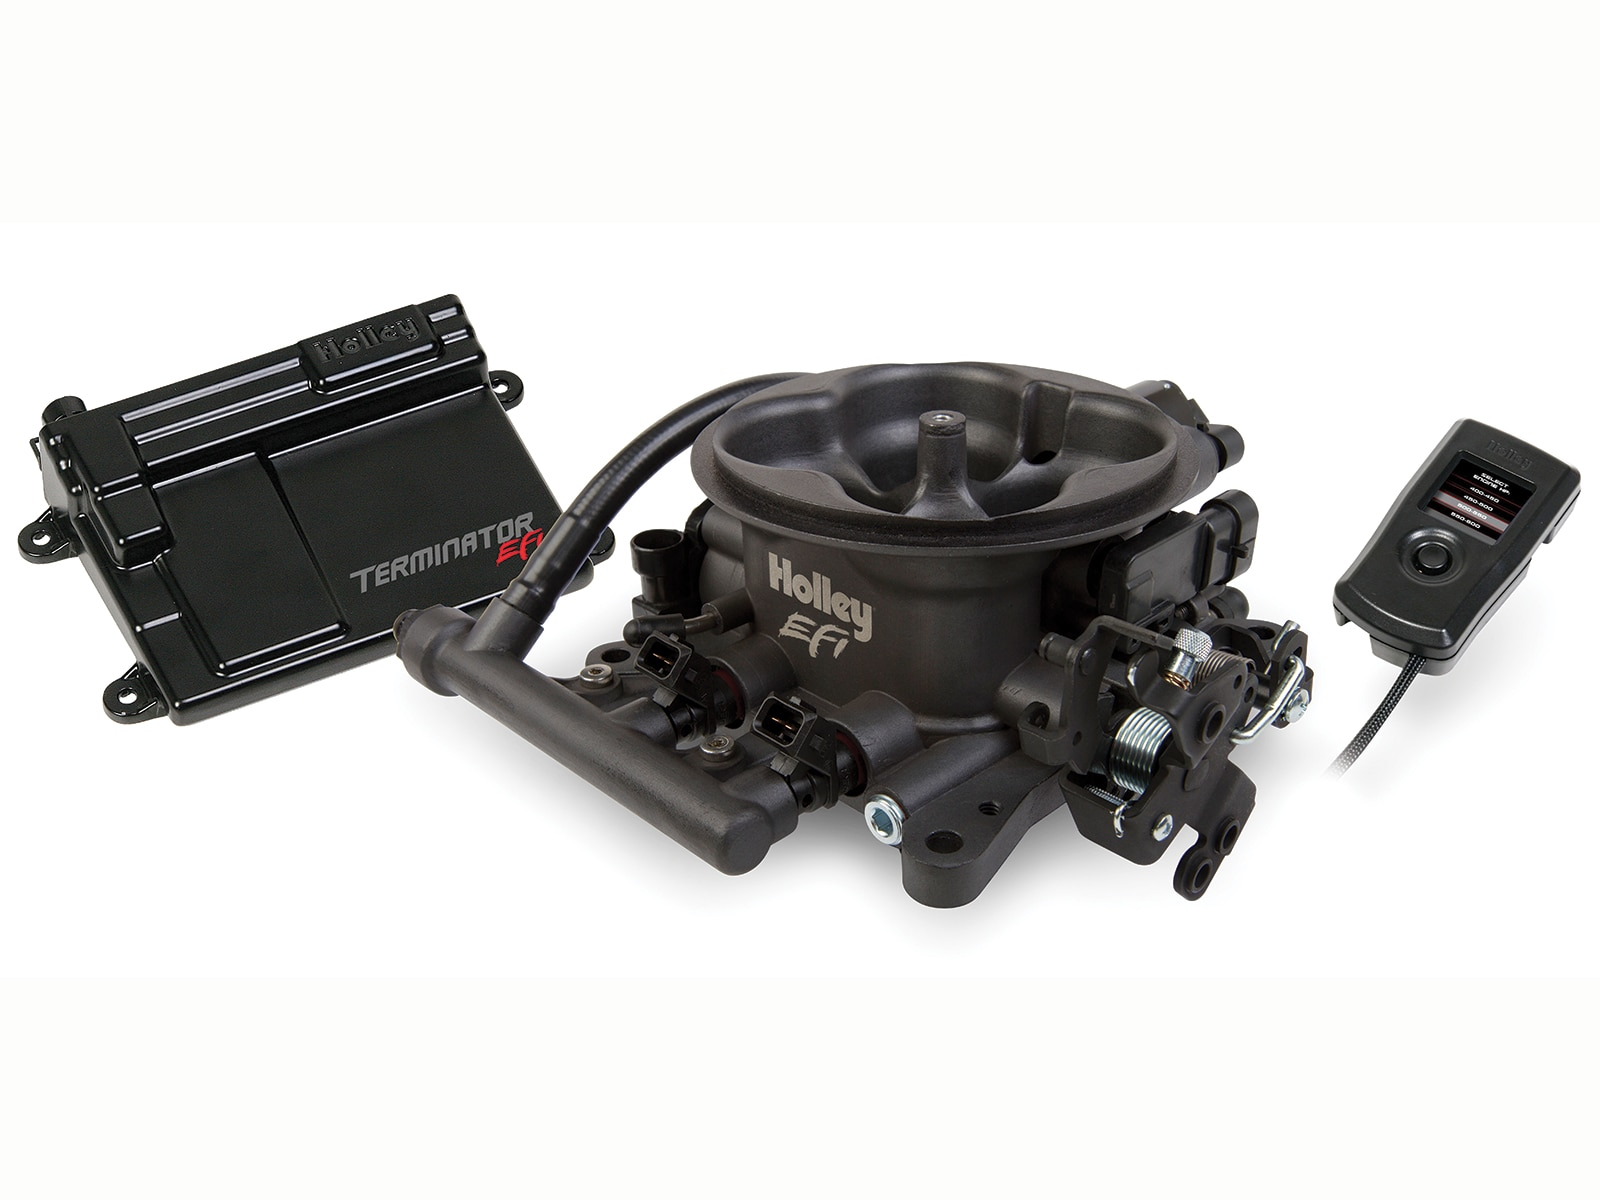 Holley Performance Products Terminator Fuel Injection System